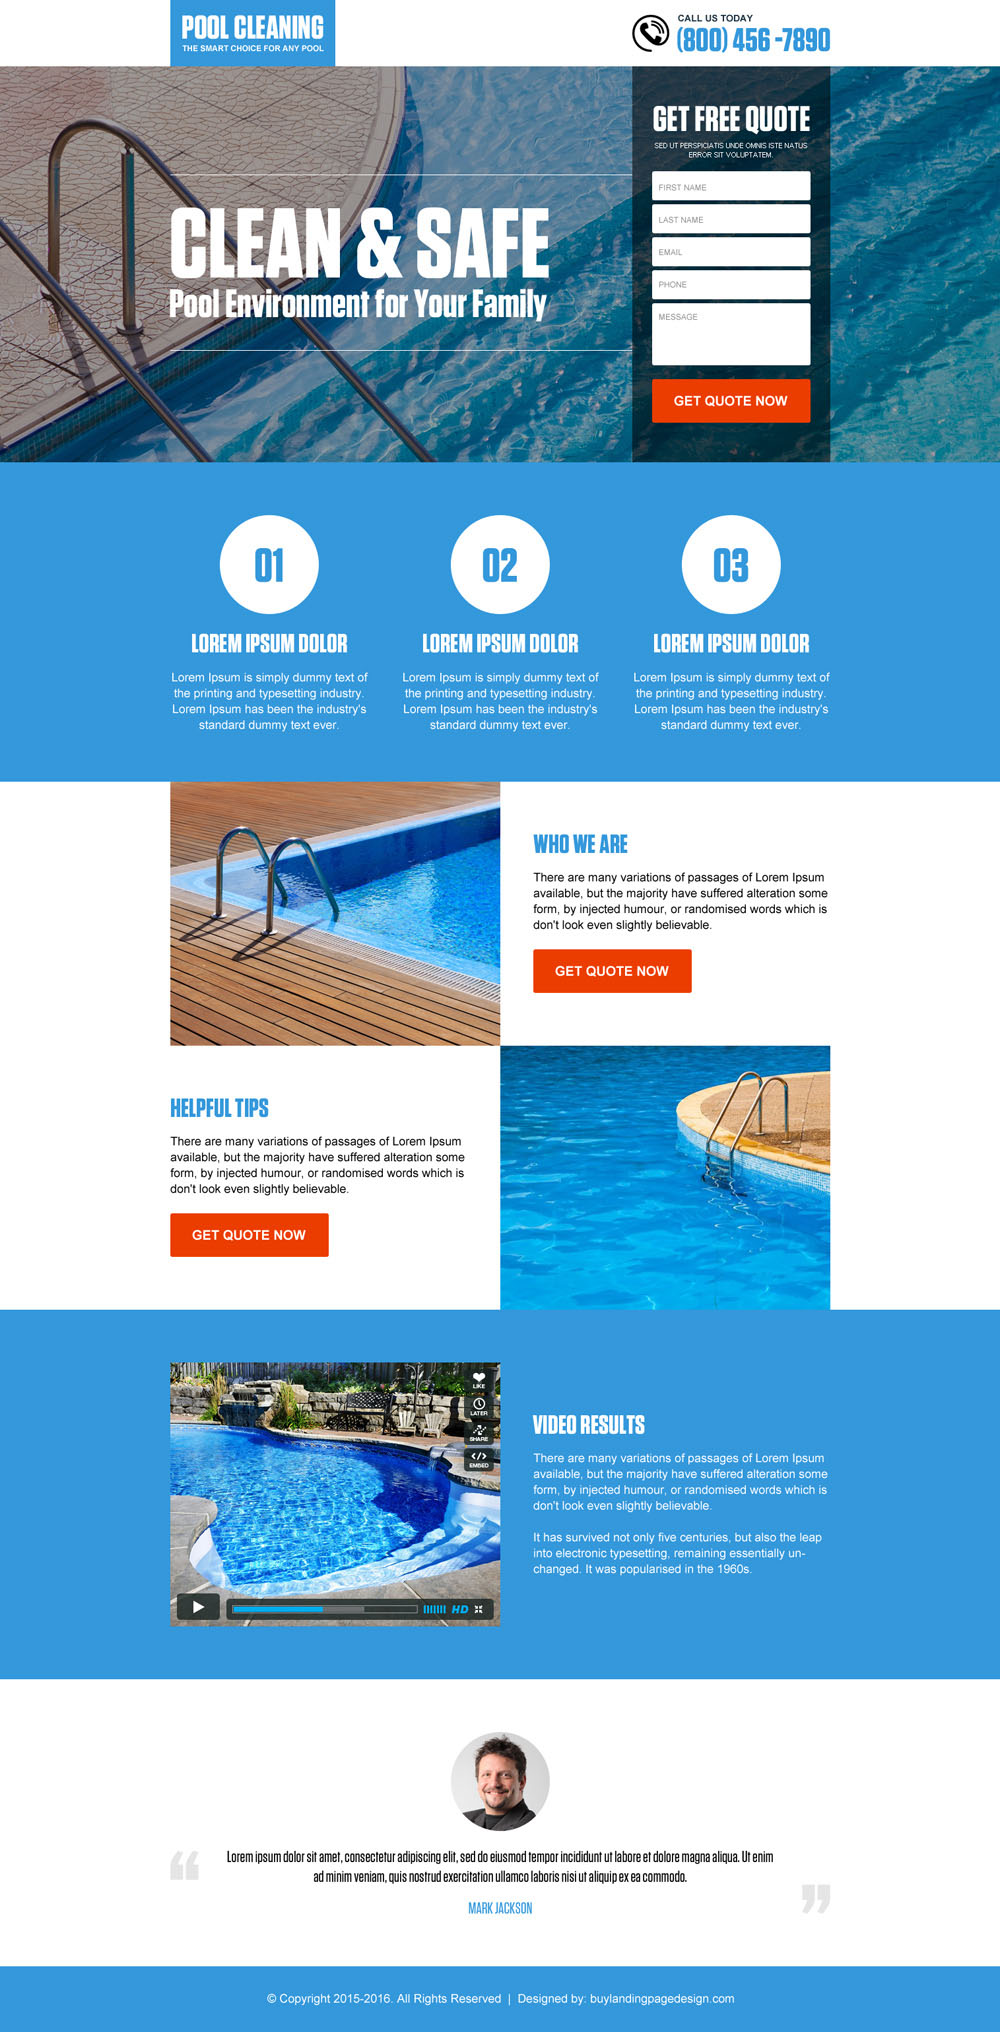 pool-cleaning-service-lead-generation-landing-page-design-002